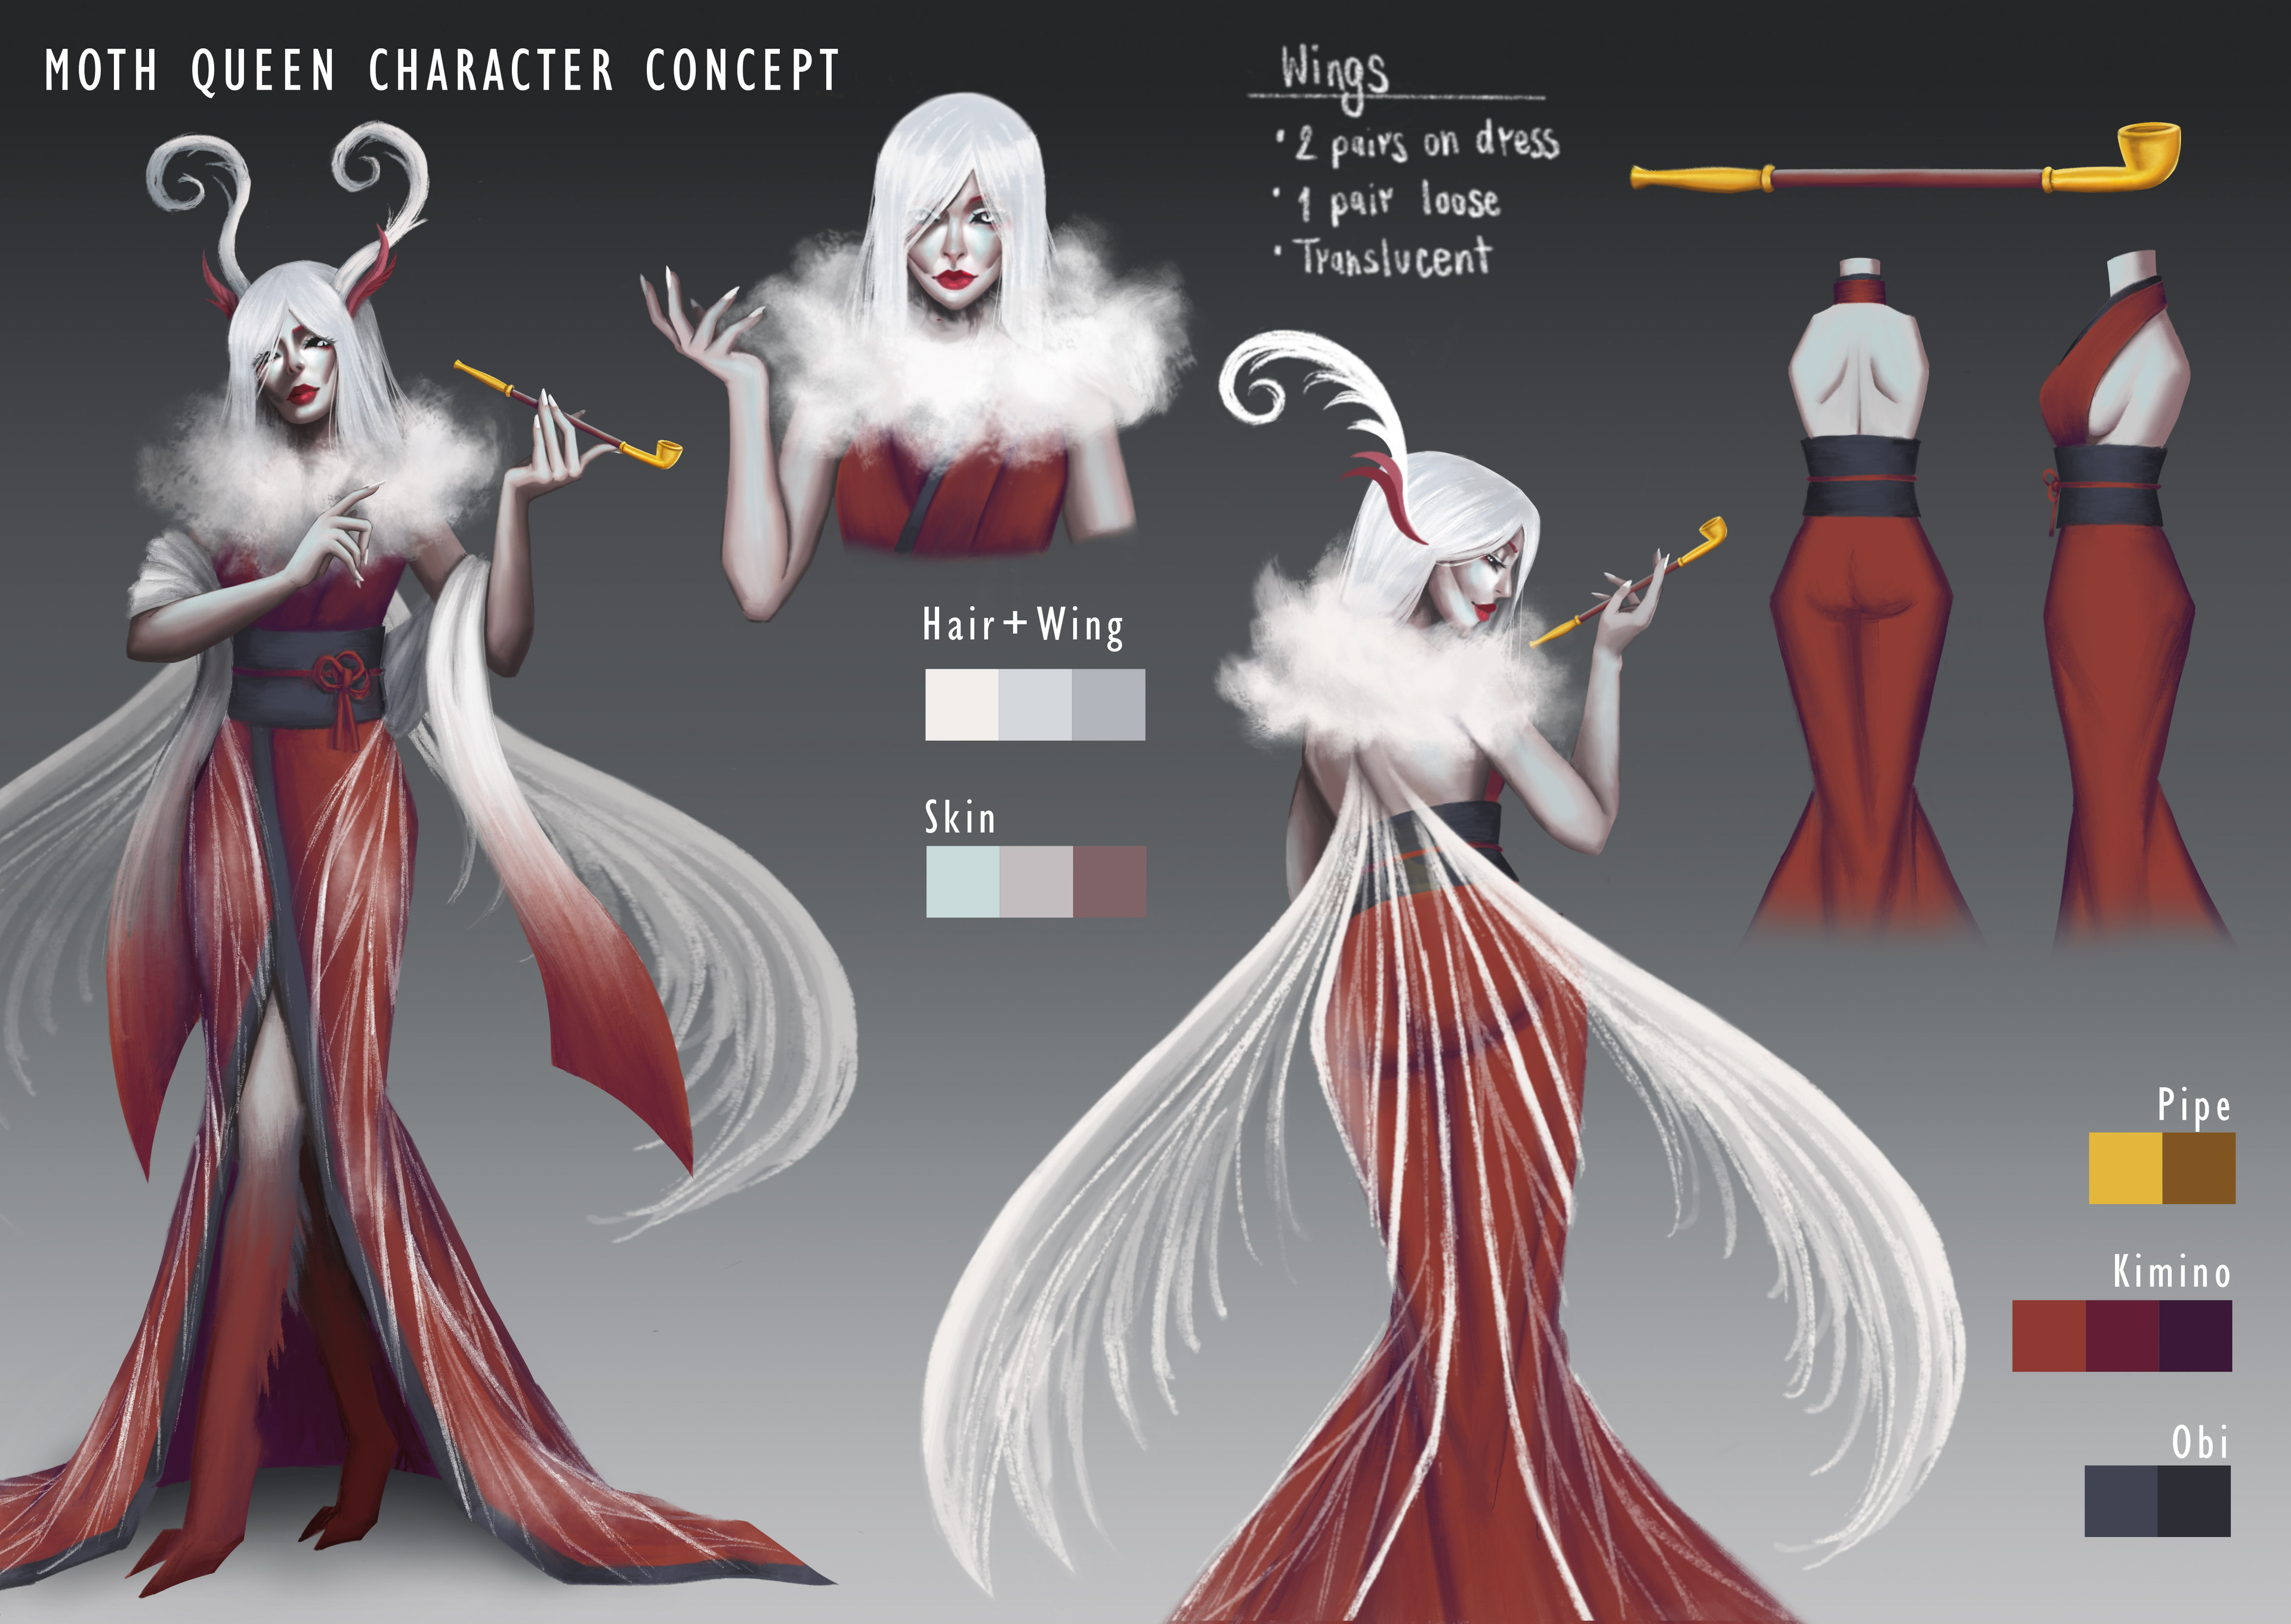 Moth Queen character design sheet - the protagonist in the game inspired by white plume moths